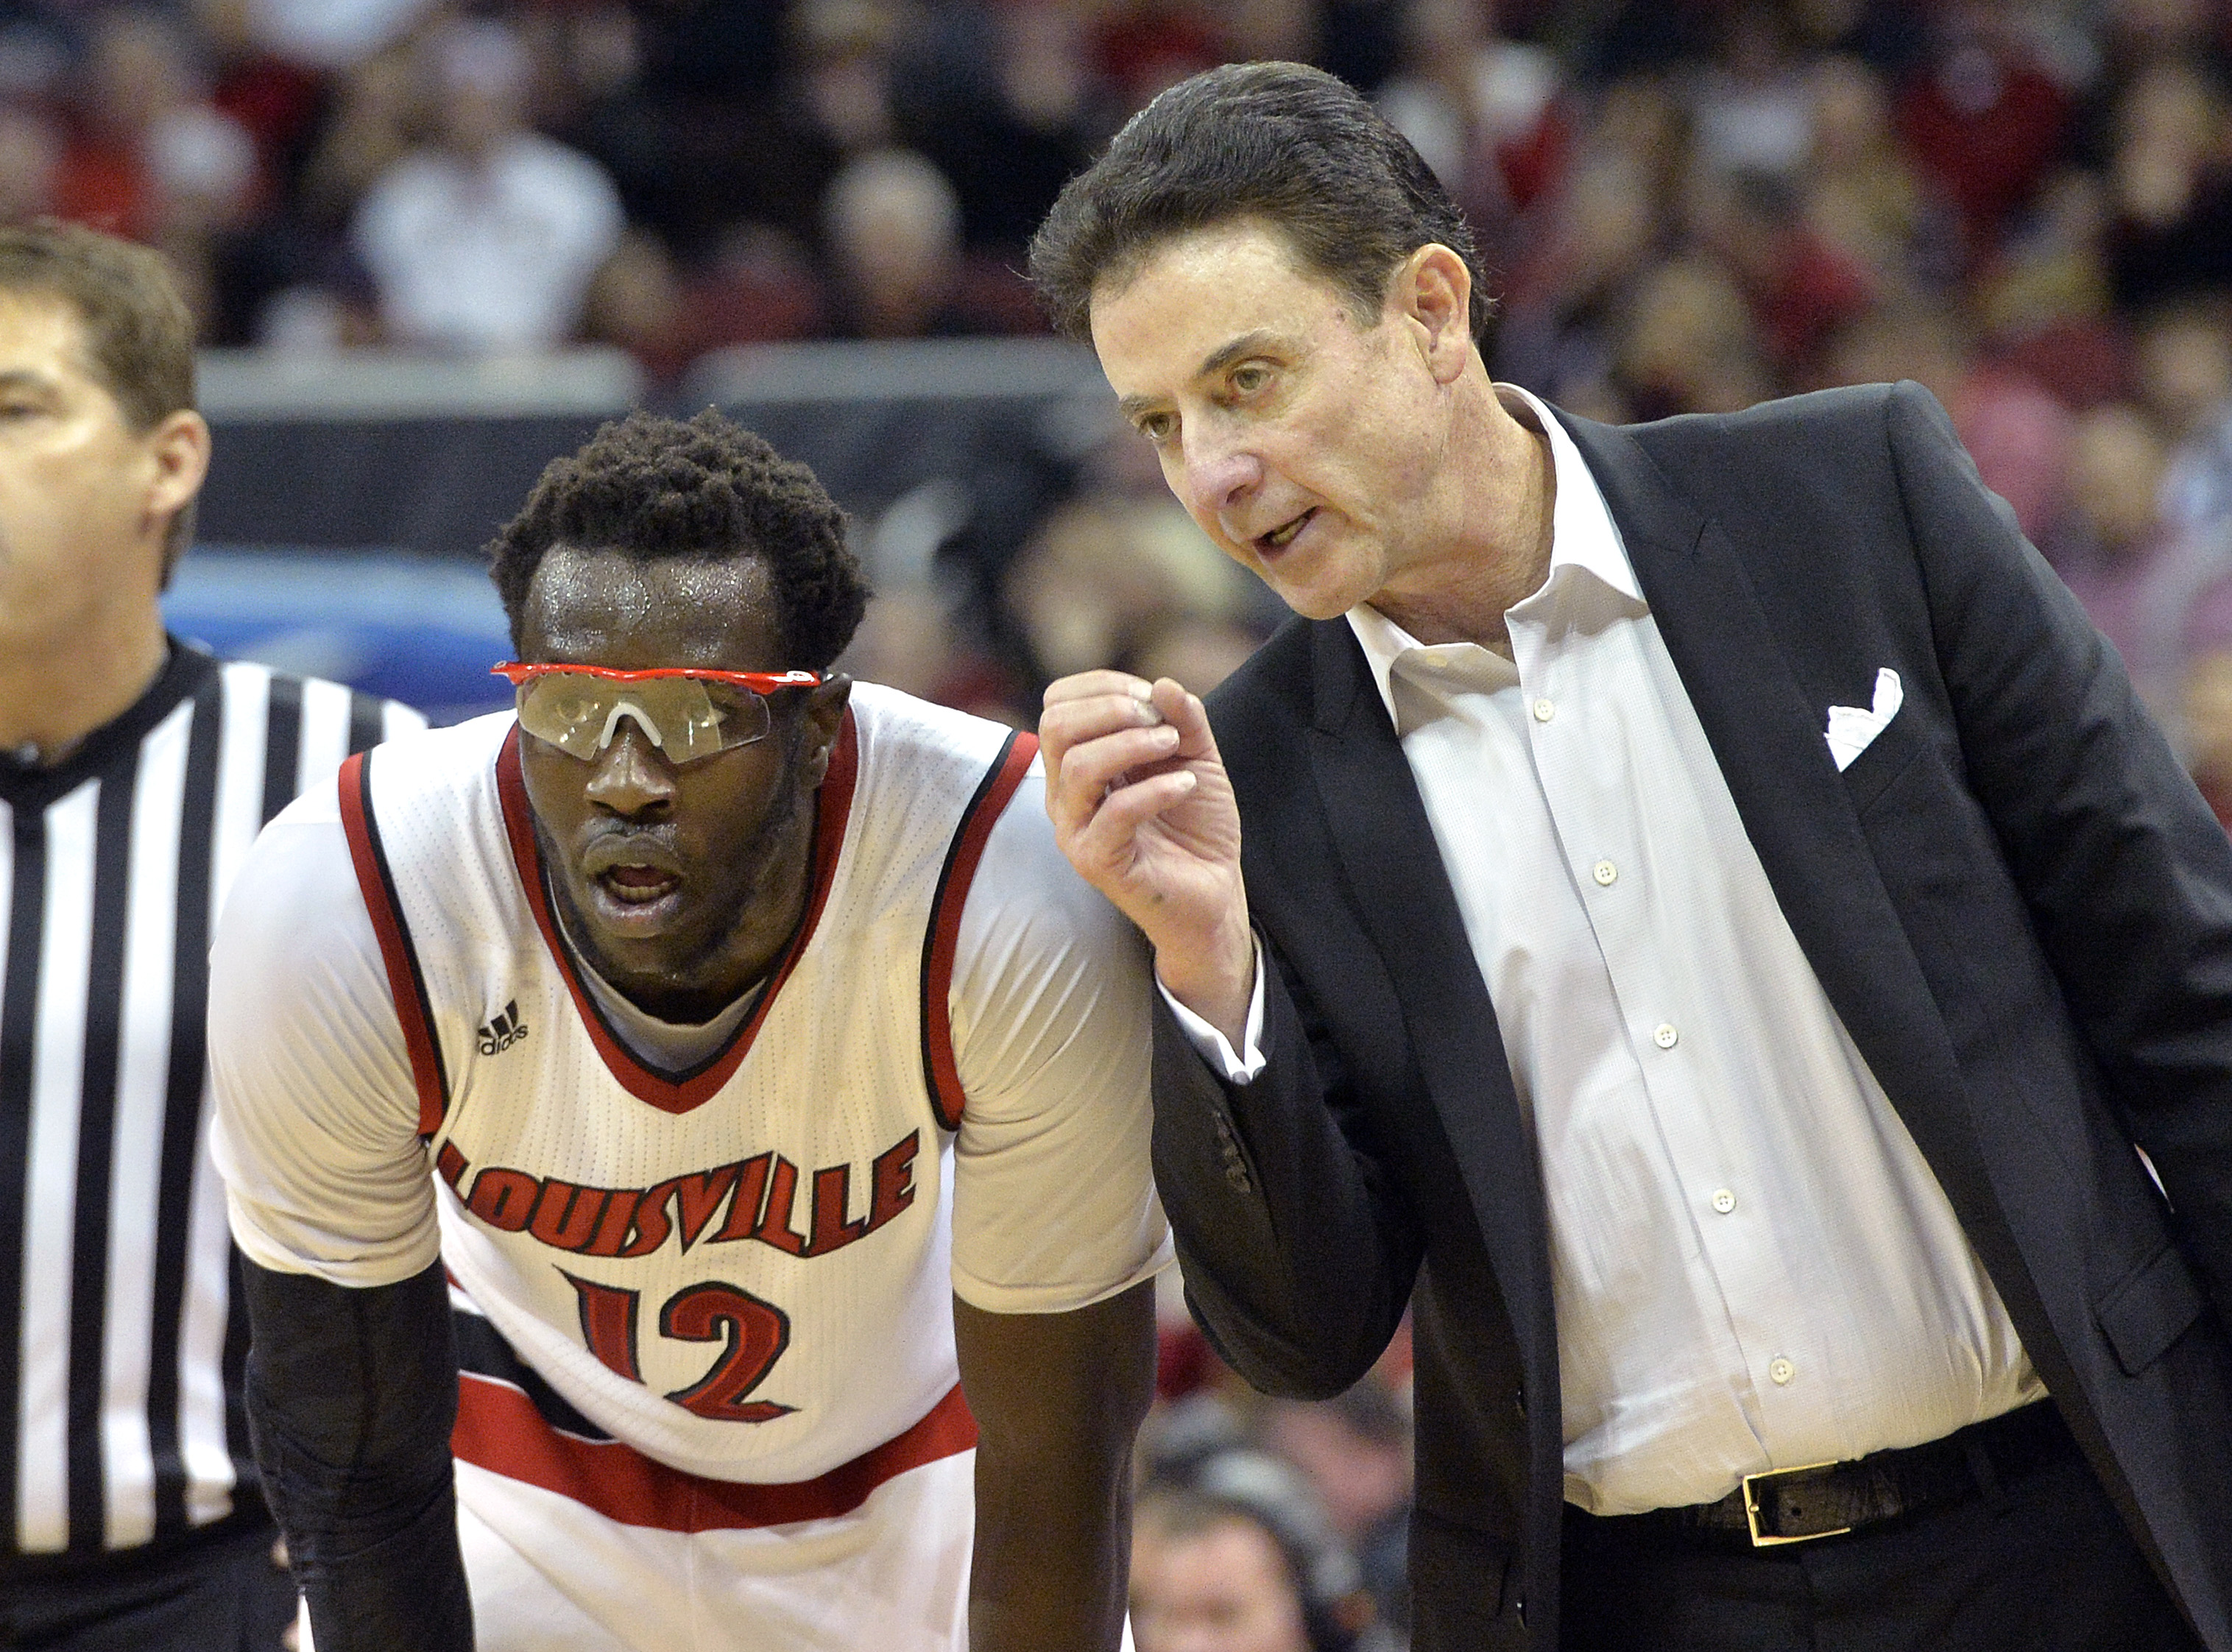 Louisville head coach Rick Pitino, right, talks to Mangok Mathiang during the second half of an NCAA college basketball game against Western Kentucky, Saturday, Dec. 19, 2015, in Louisville, Ky. Louisville won 78-56. (AP Photo/Timothy D. Easley)